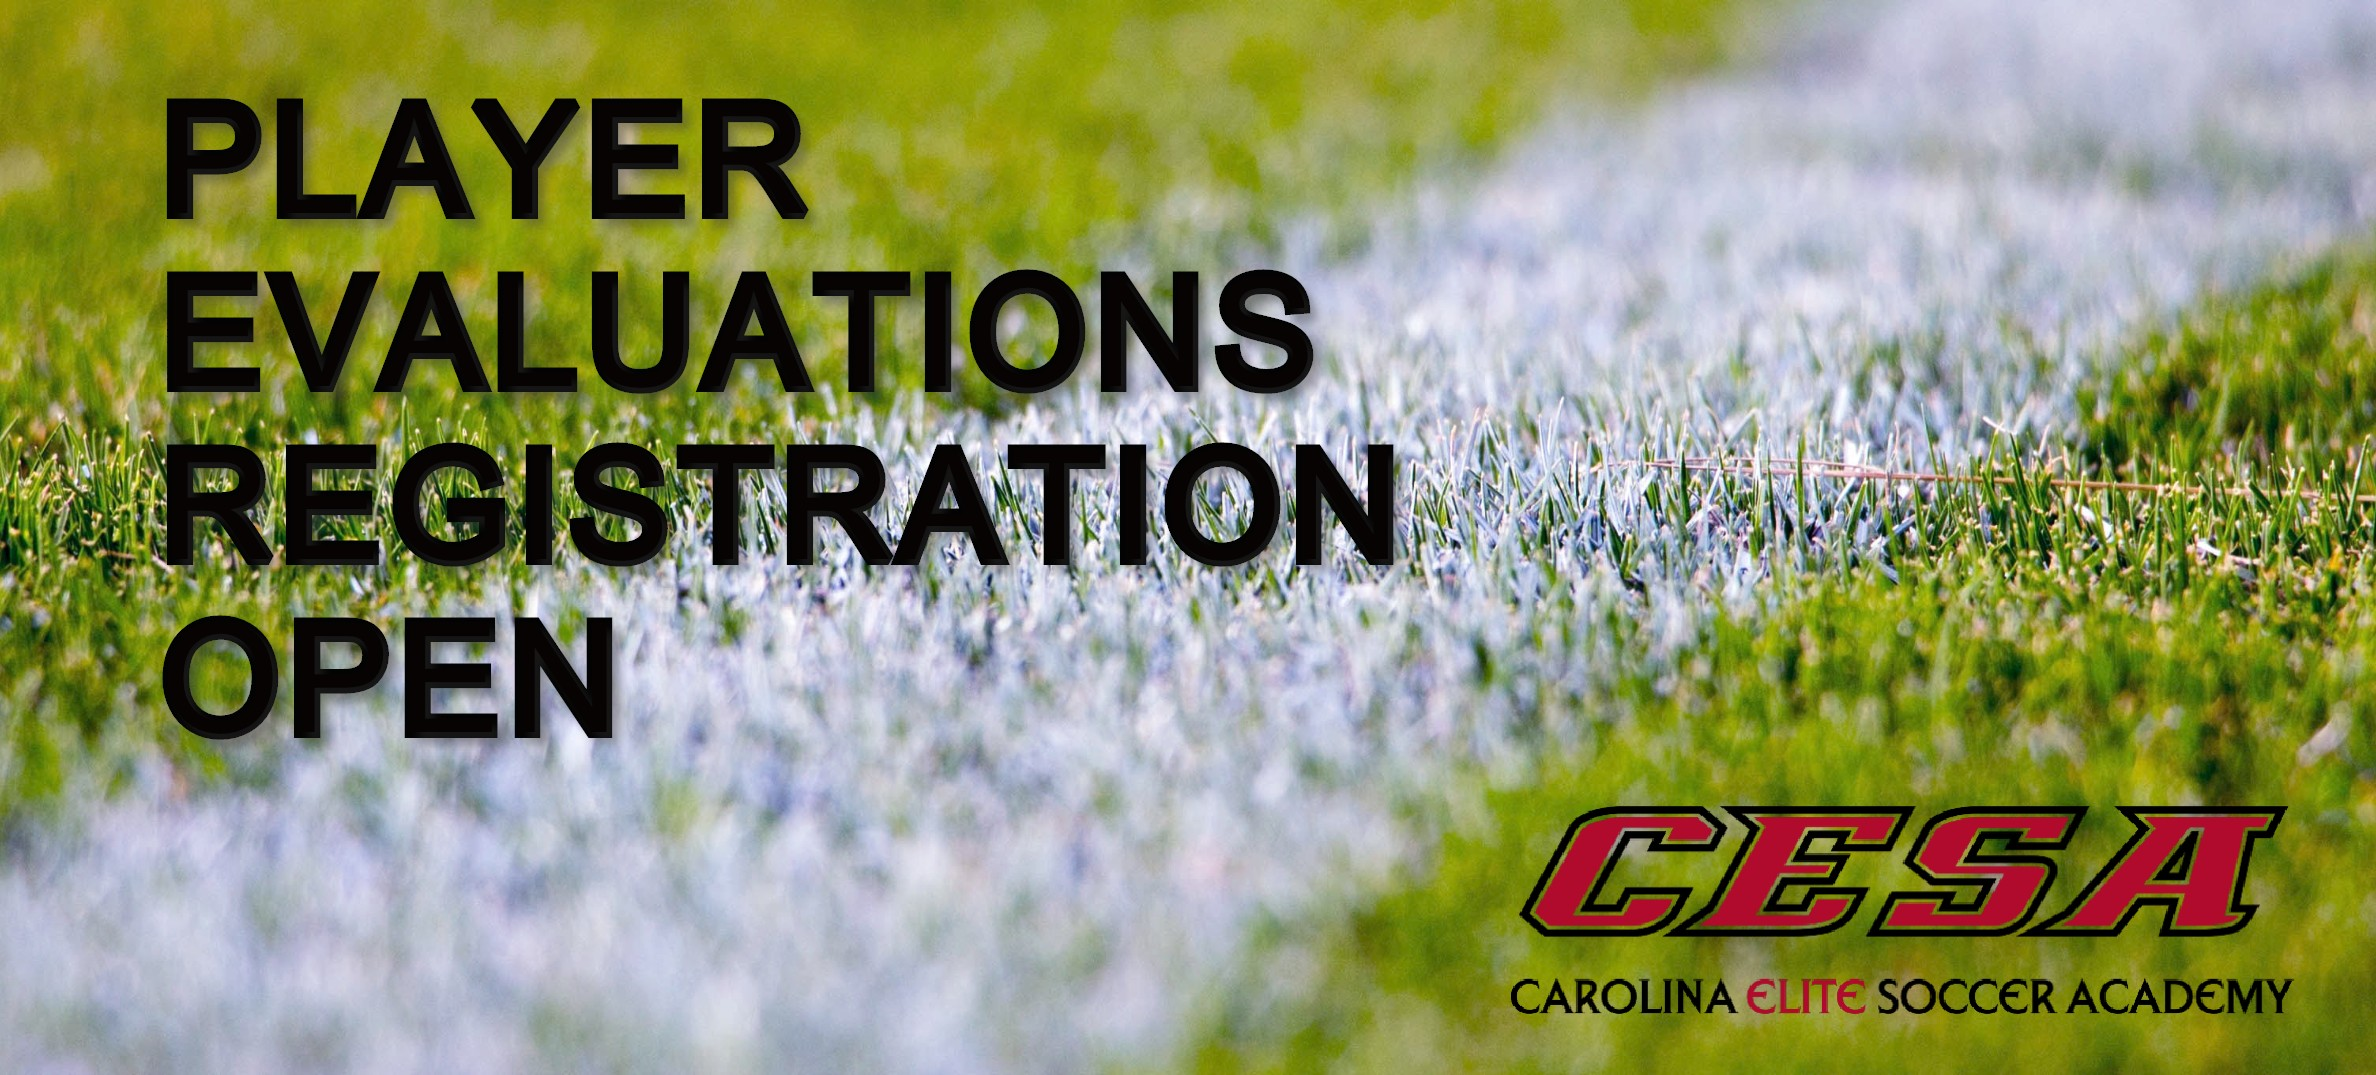 2020-21 Player Evaluations Registration Open